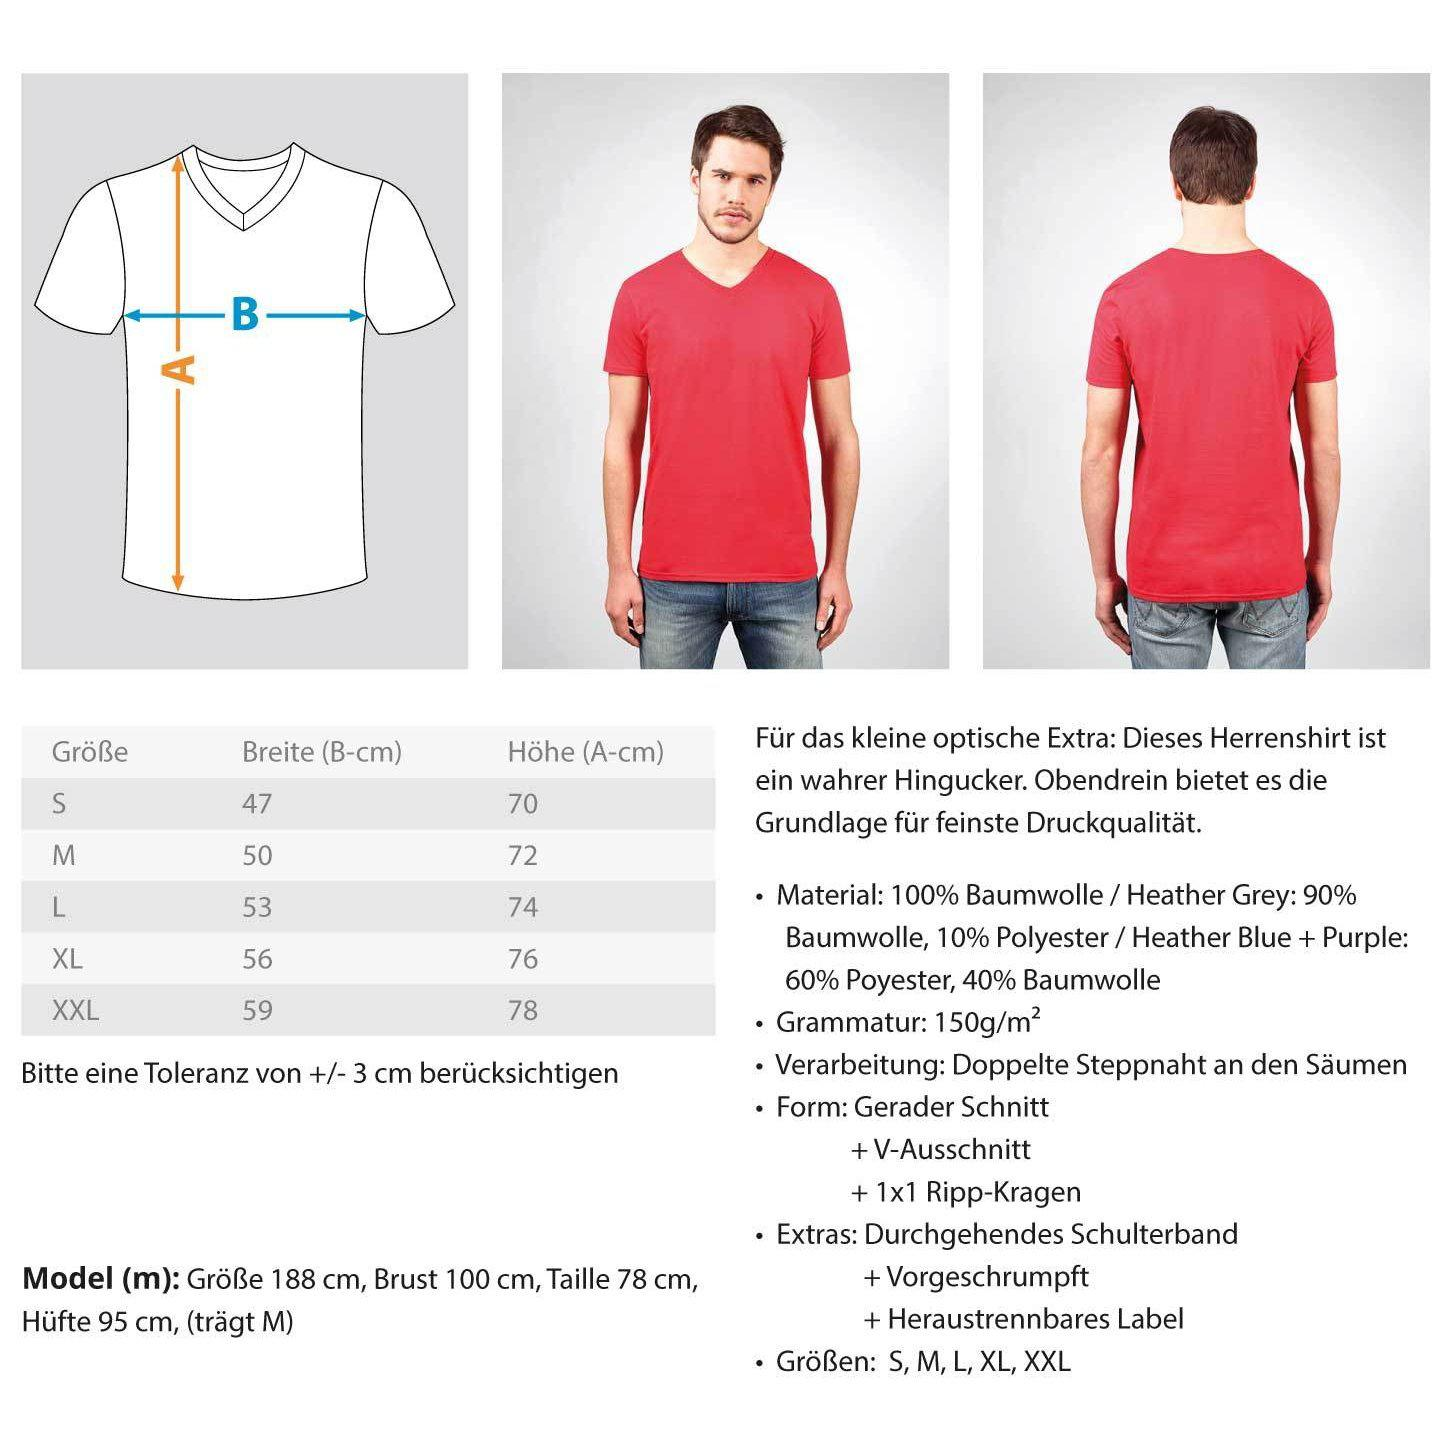 ACID TECHHOUSE - Rave On!® - Herren V-Neck Shirt V-Neck Herrenshirt - Rave On!® der Club & Techno Szene Shop für Coole Junge Mode Streetwear Style & Fashion Outfits + Sexy Festival 420 Stuff